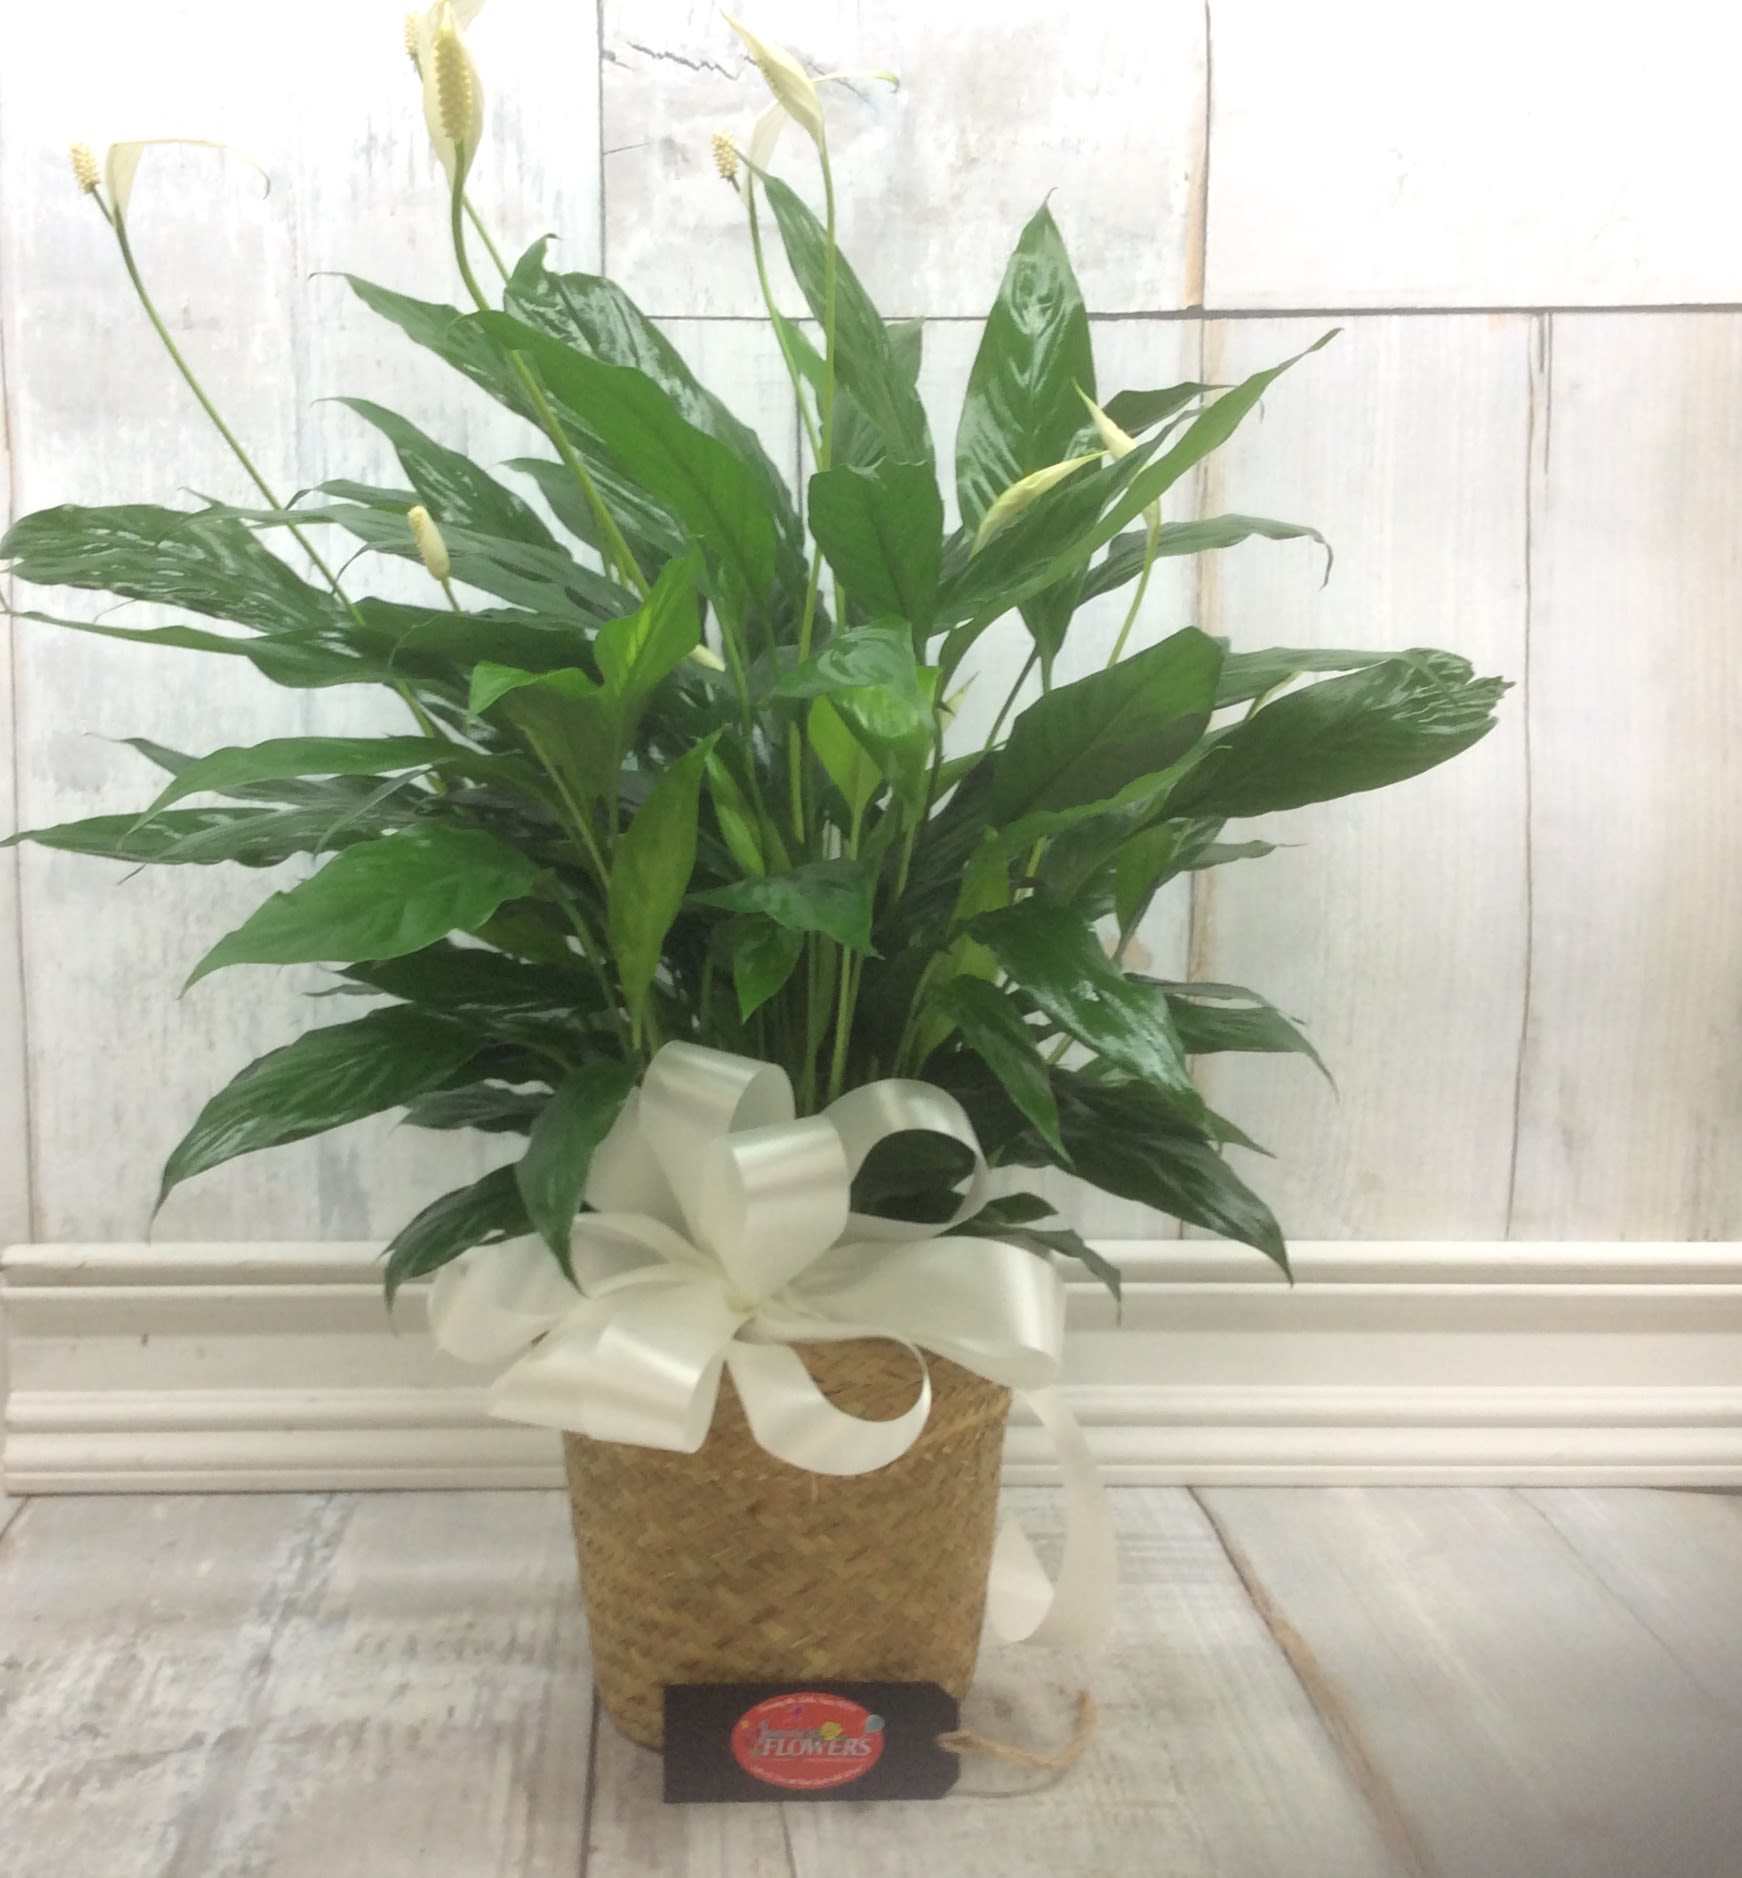 Peace Lily Plant in Camdenton, MO | Janine's Flowers on peace lily family plant, chinese evergreen house plant, droopy peace lily plant, funeral peace lily plant, peace lily potted plant, peace lily plant benefits, classic peace lily plant, black bamboo potted plant, white and green leaves house plant, croton house plant, peace plant brown leaves, dragon plant, holly house plant, zamiifolia house plant, problems with peace lily plant, weeping fig house plant, marginata house plant, artificial bamboo house plant, black gold lily plant, pineapple plant house plant,